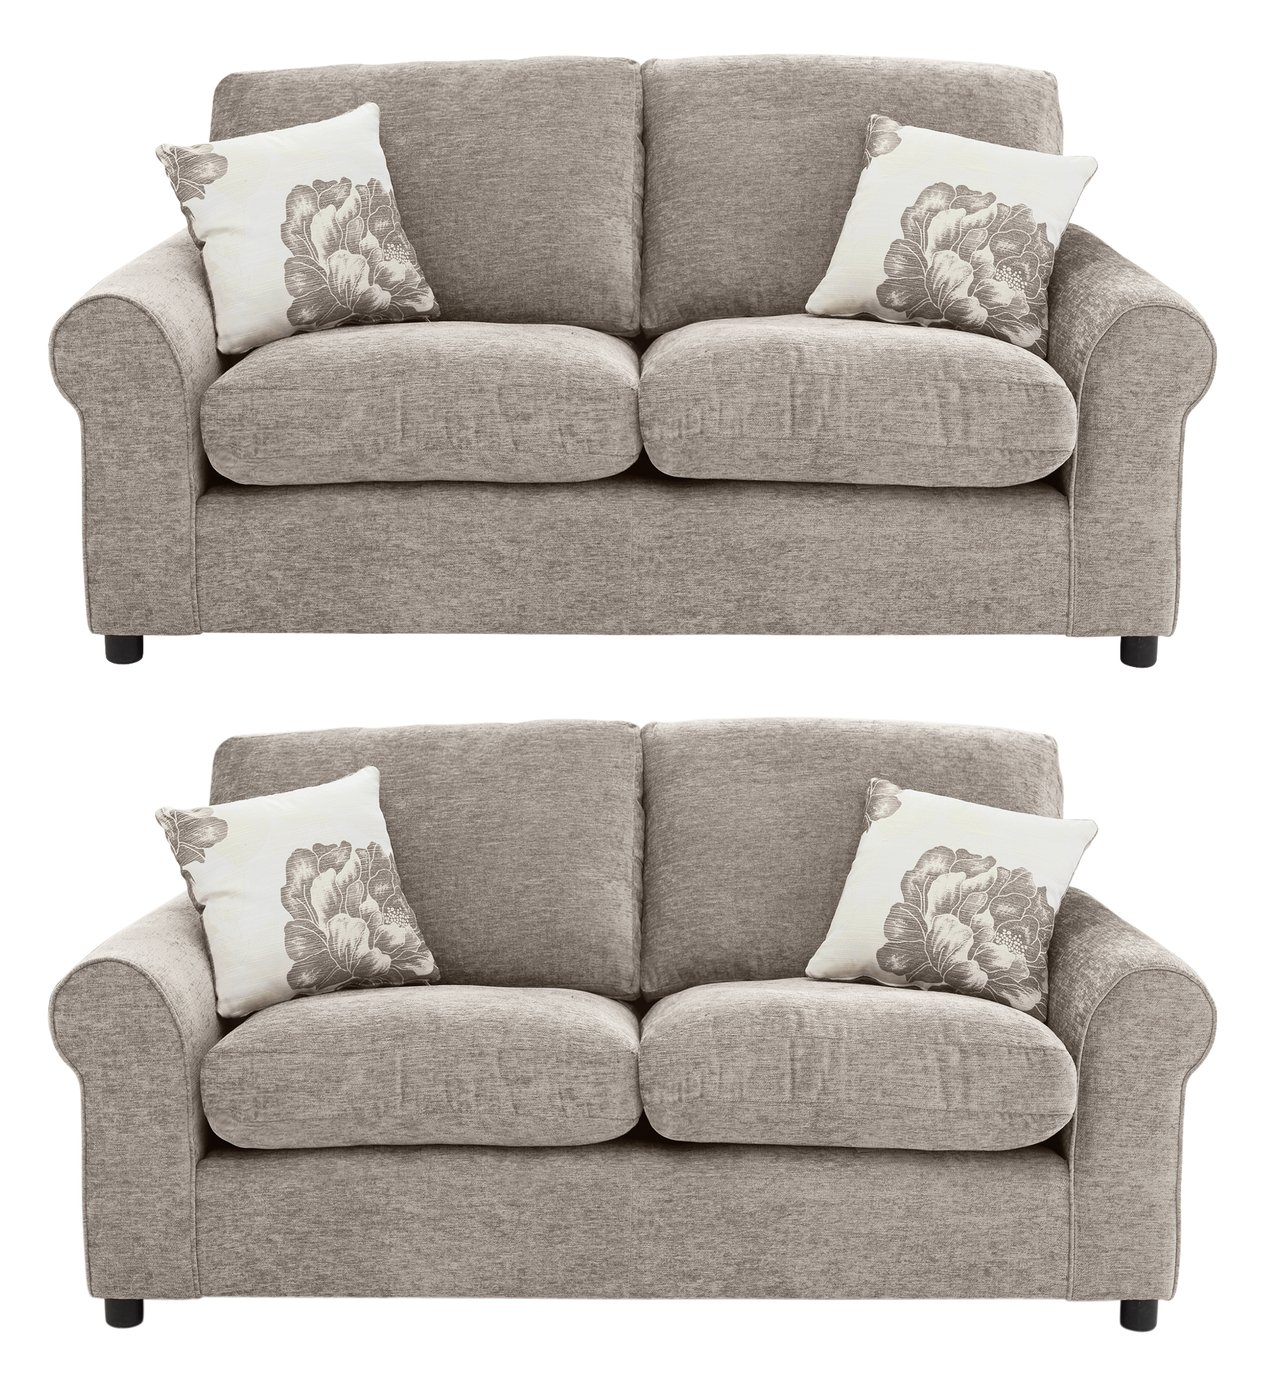 argos ava fabric sofa review power recliner packages page 3 price tracker